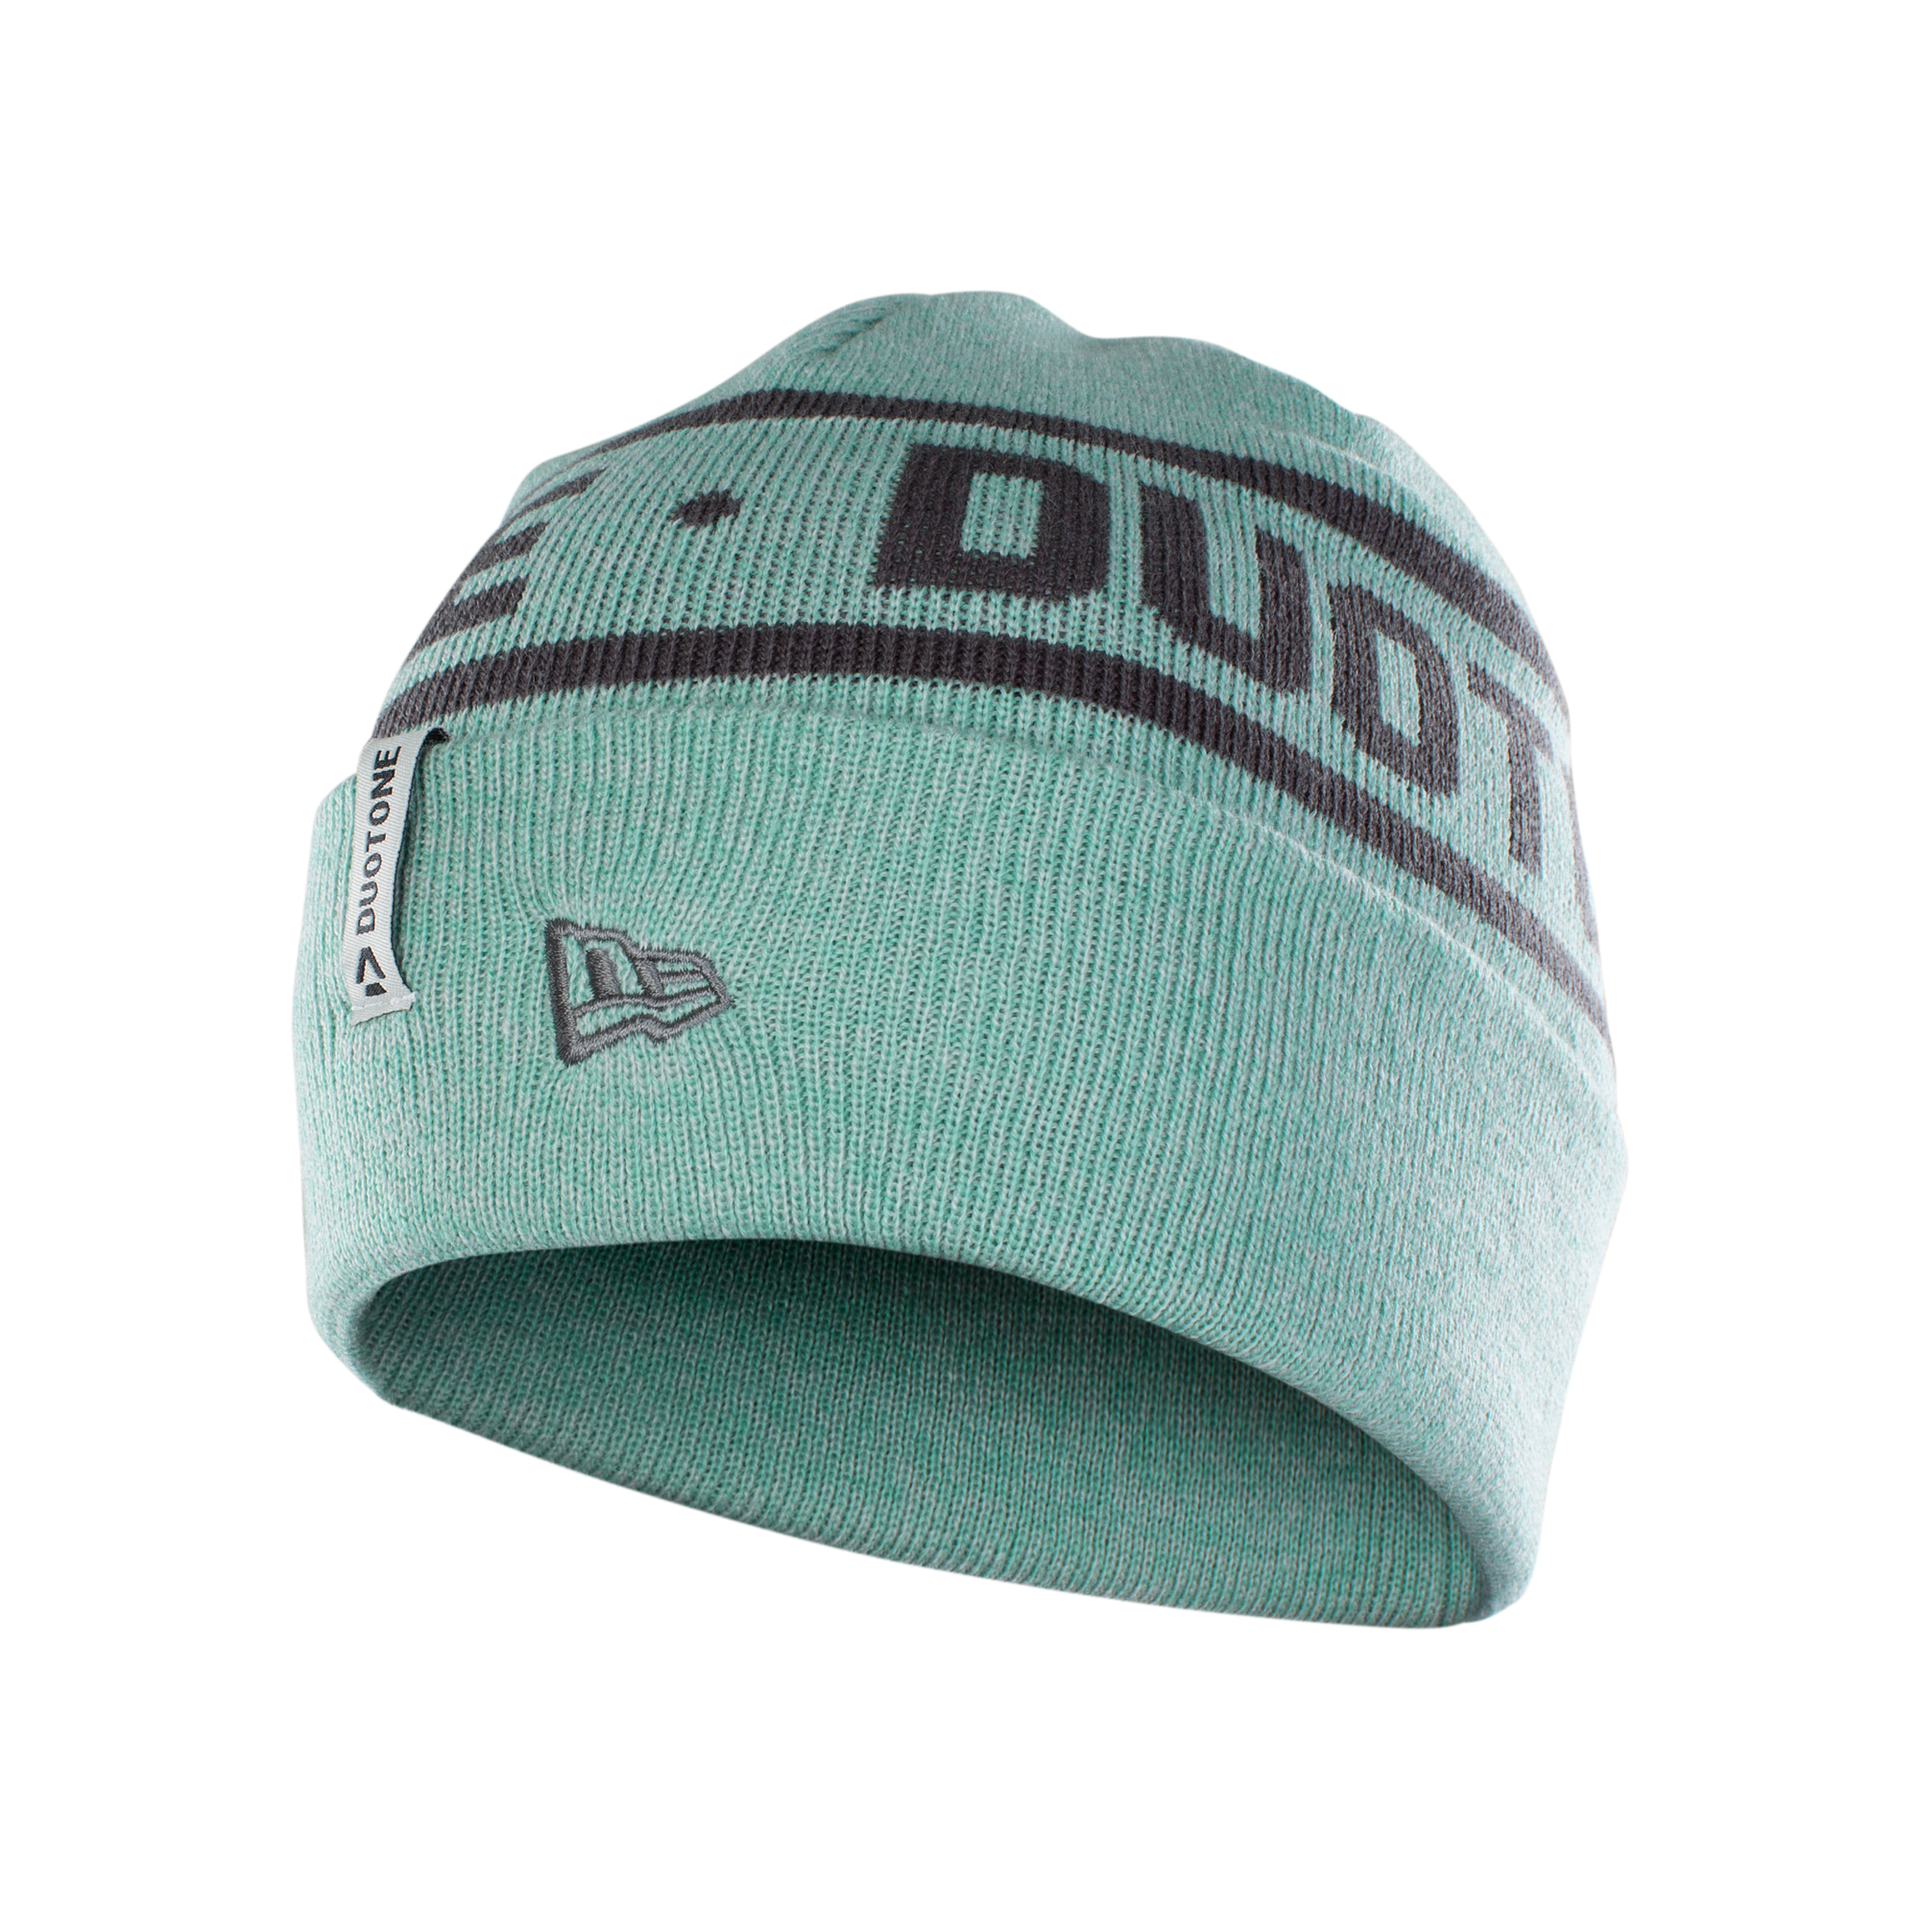 DUOTONE SS20 NEW ERA BEANIE LIGHT GREEN